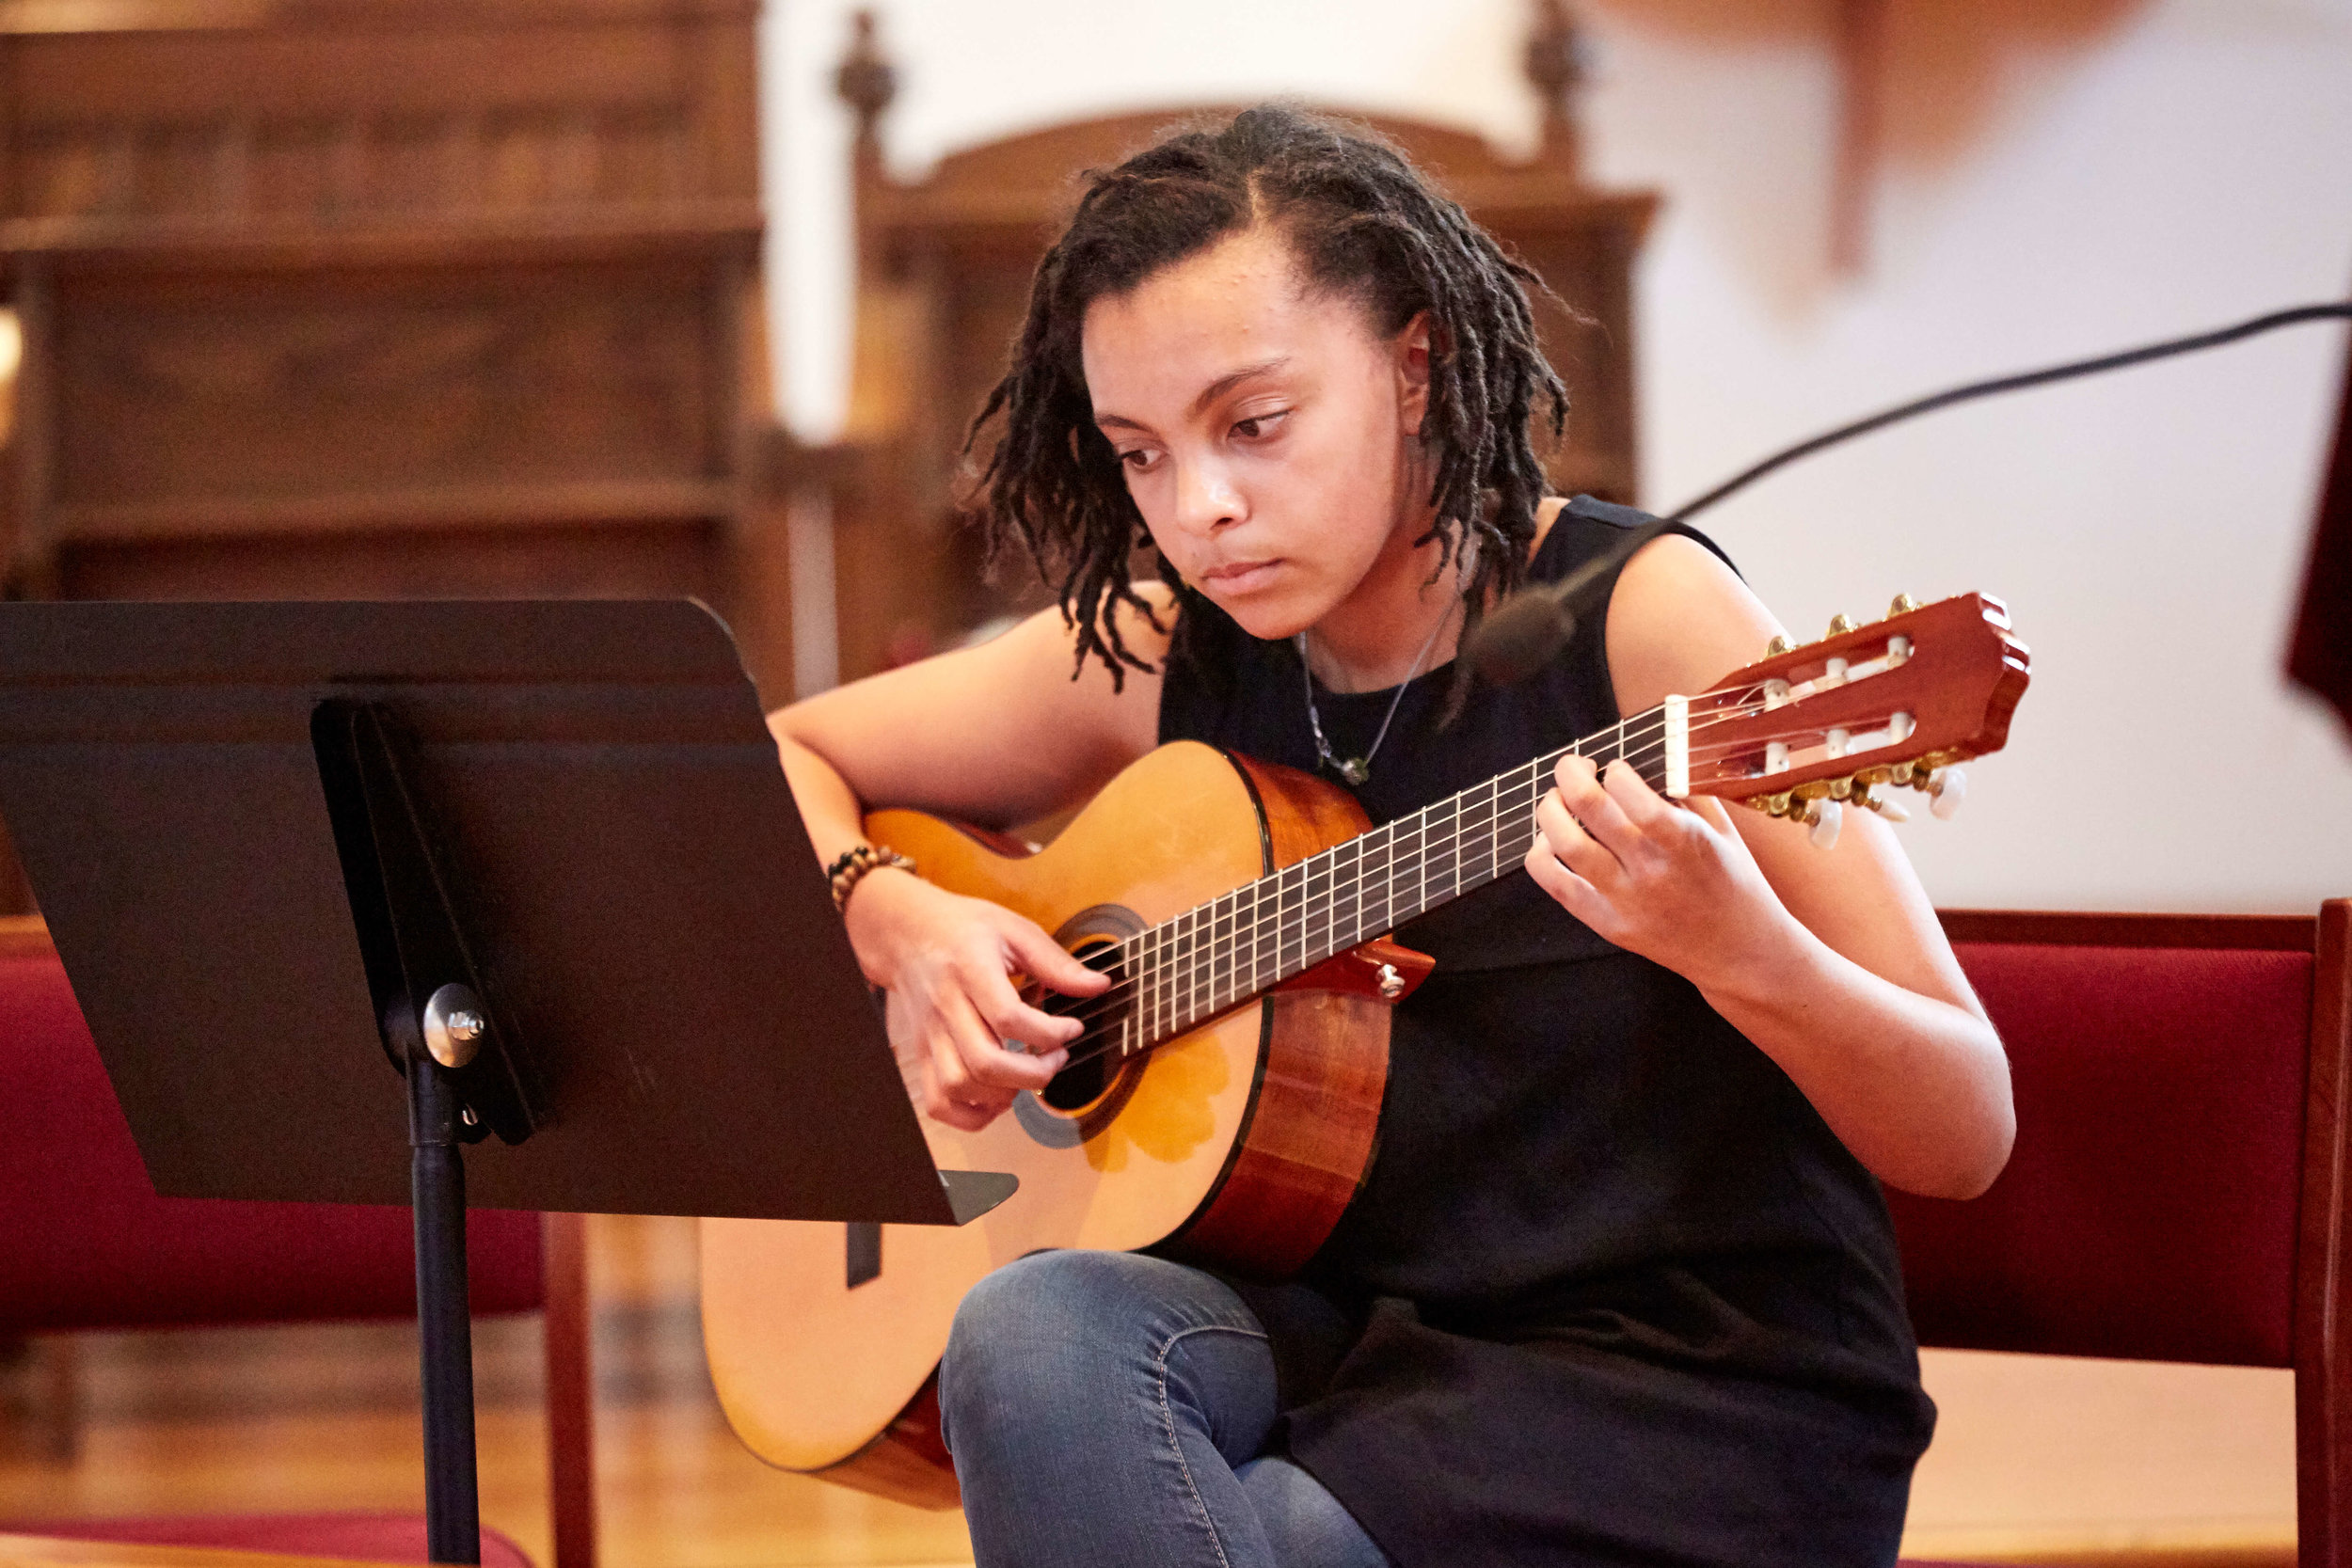 GUITAR LESSONS IN CINCINNATI, ANDERSON, & MASON   for beginner, intermediate, and advanced students of all ages  CALL 513-560-9175 TODAY TO SCHEDULE YOUR FIRST LESSON   Request Info